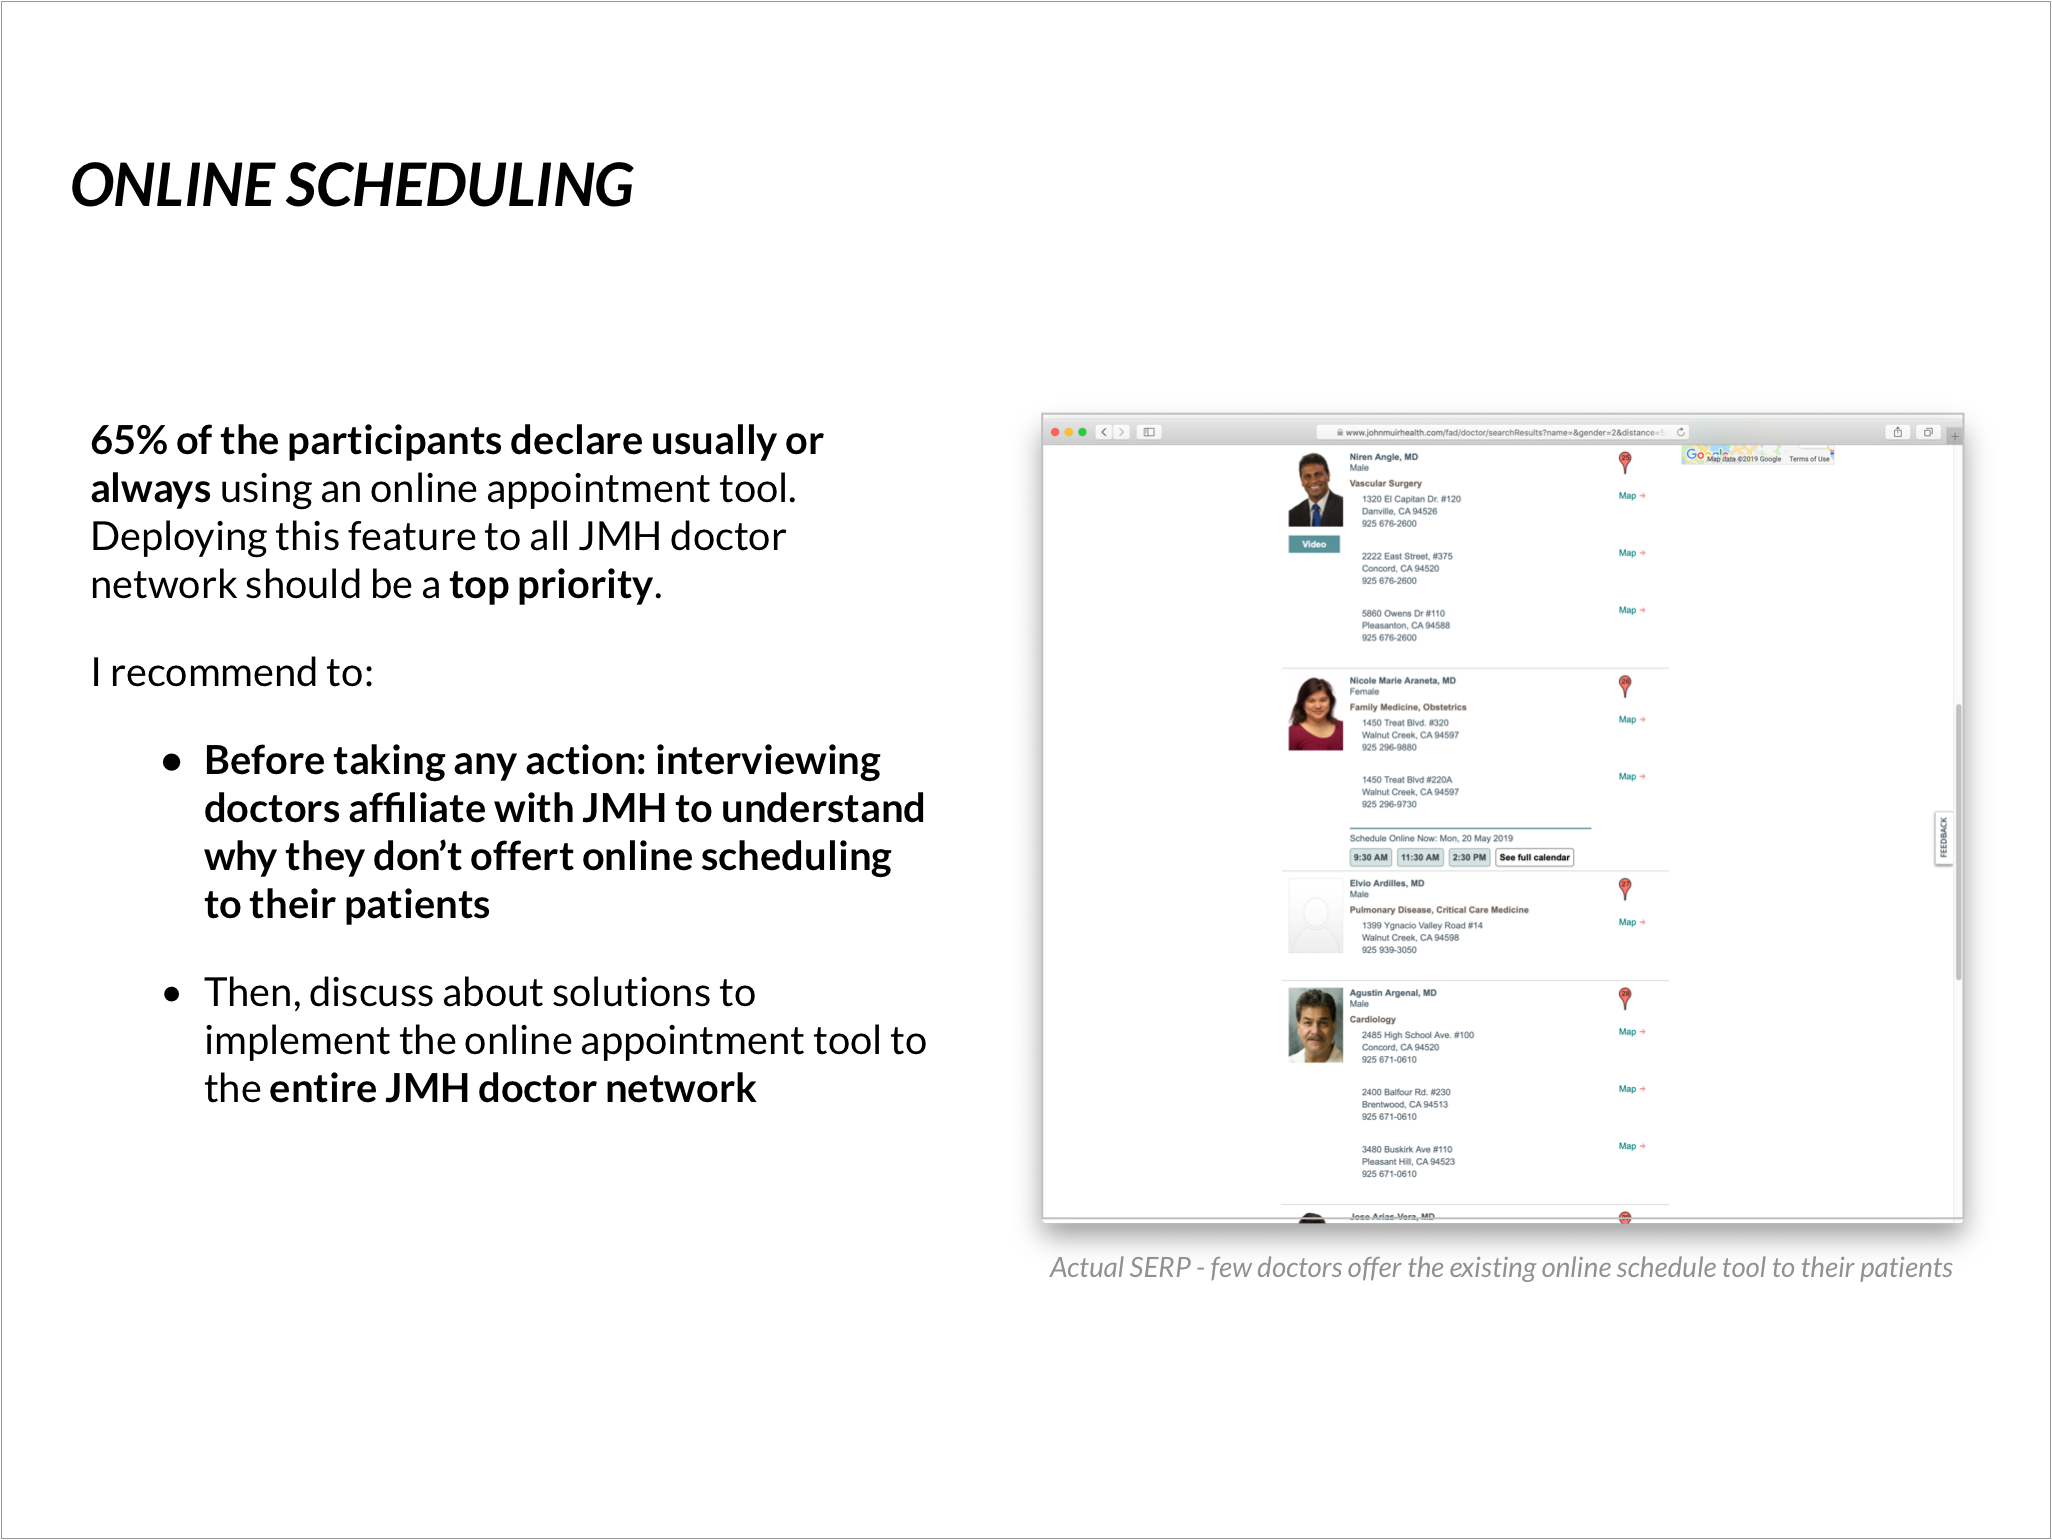 Online scheduling: the top priority should be to deploy the functionality to the entire JMH newtork